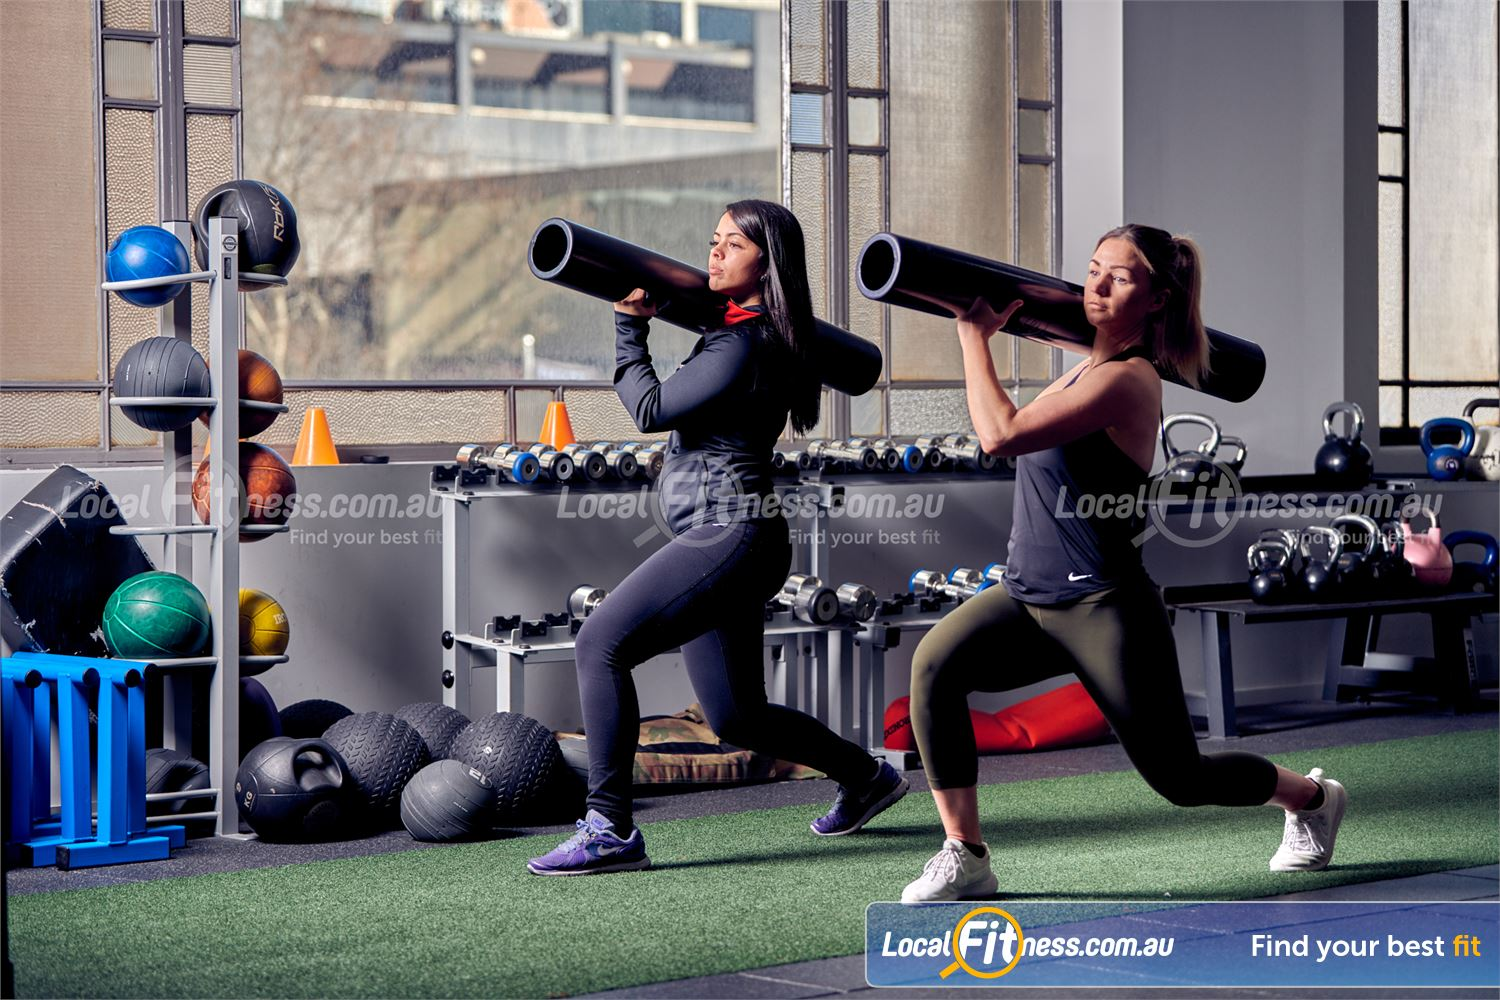 Fitness First Macquarie Ryde Fully equipped functional training area with kettlebells, battle ropes, ViPR training and more.